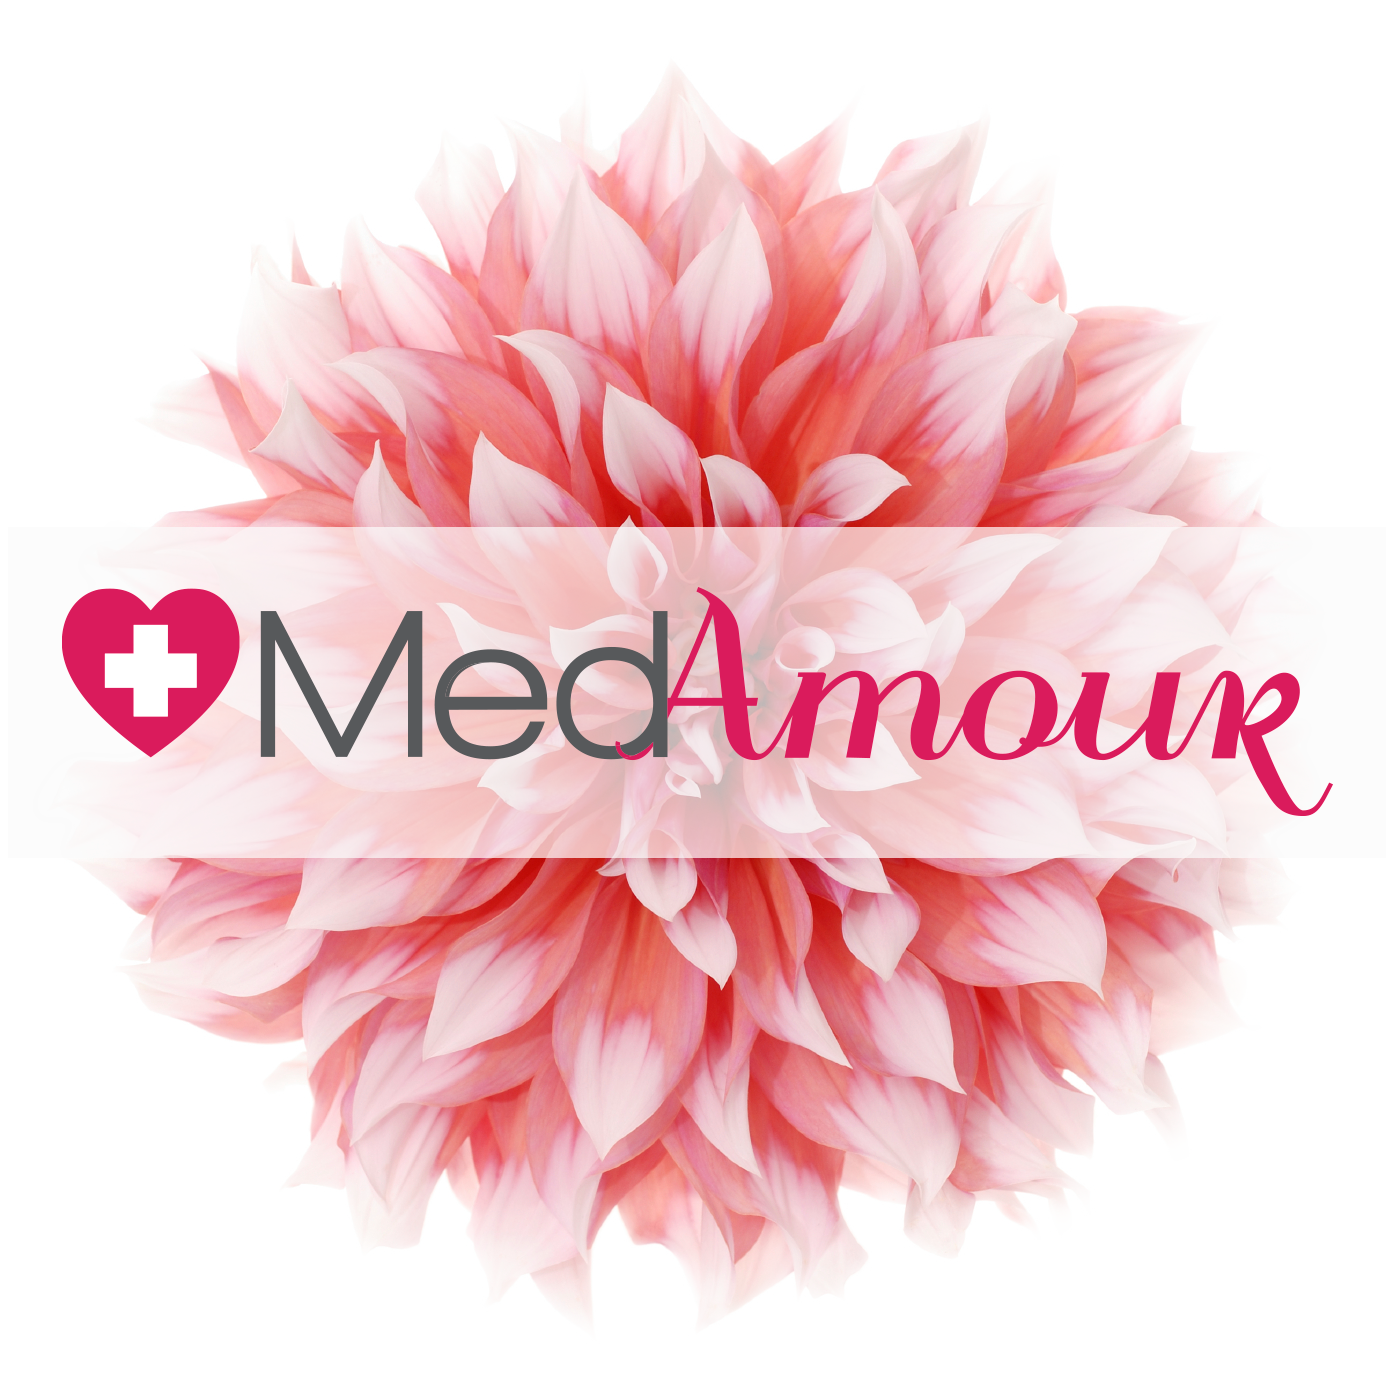 MedAmour Solutions for Intimate Wellness